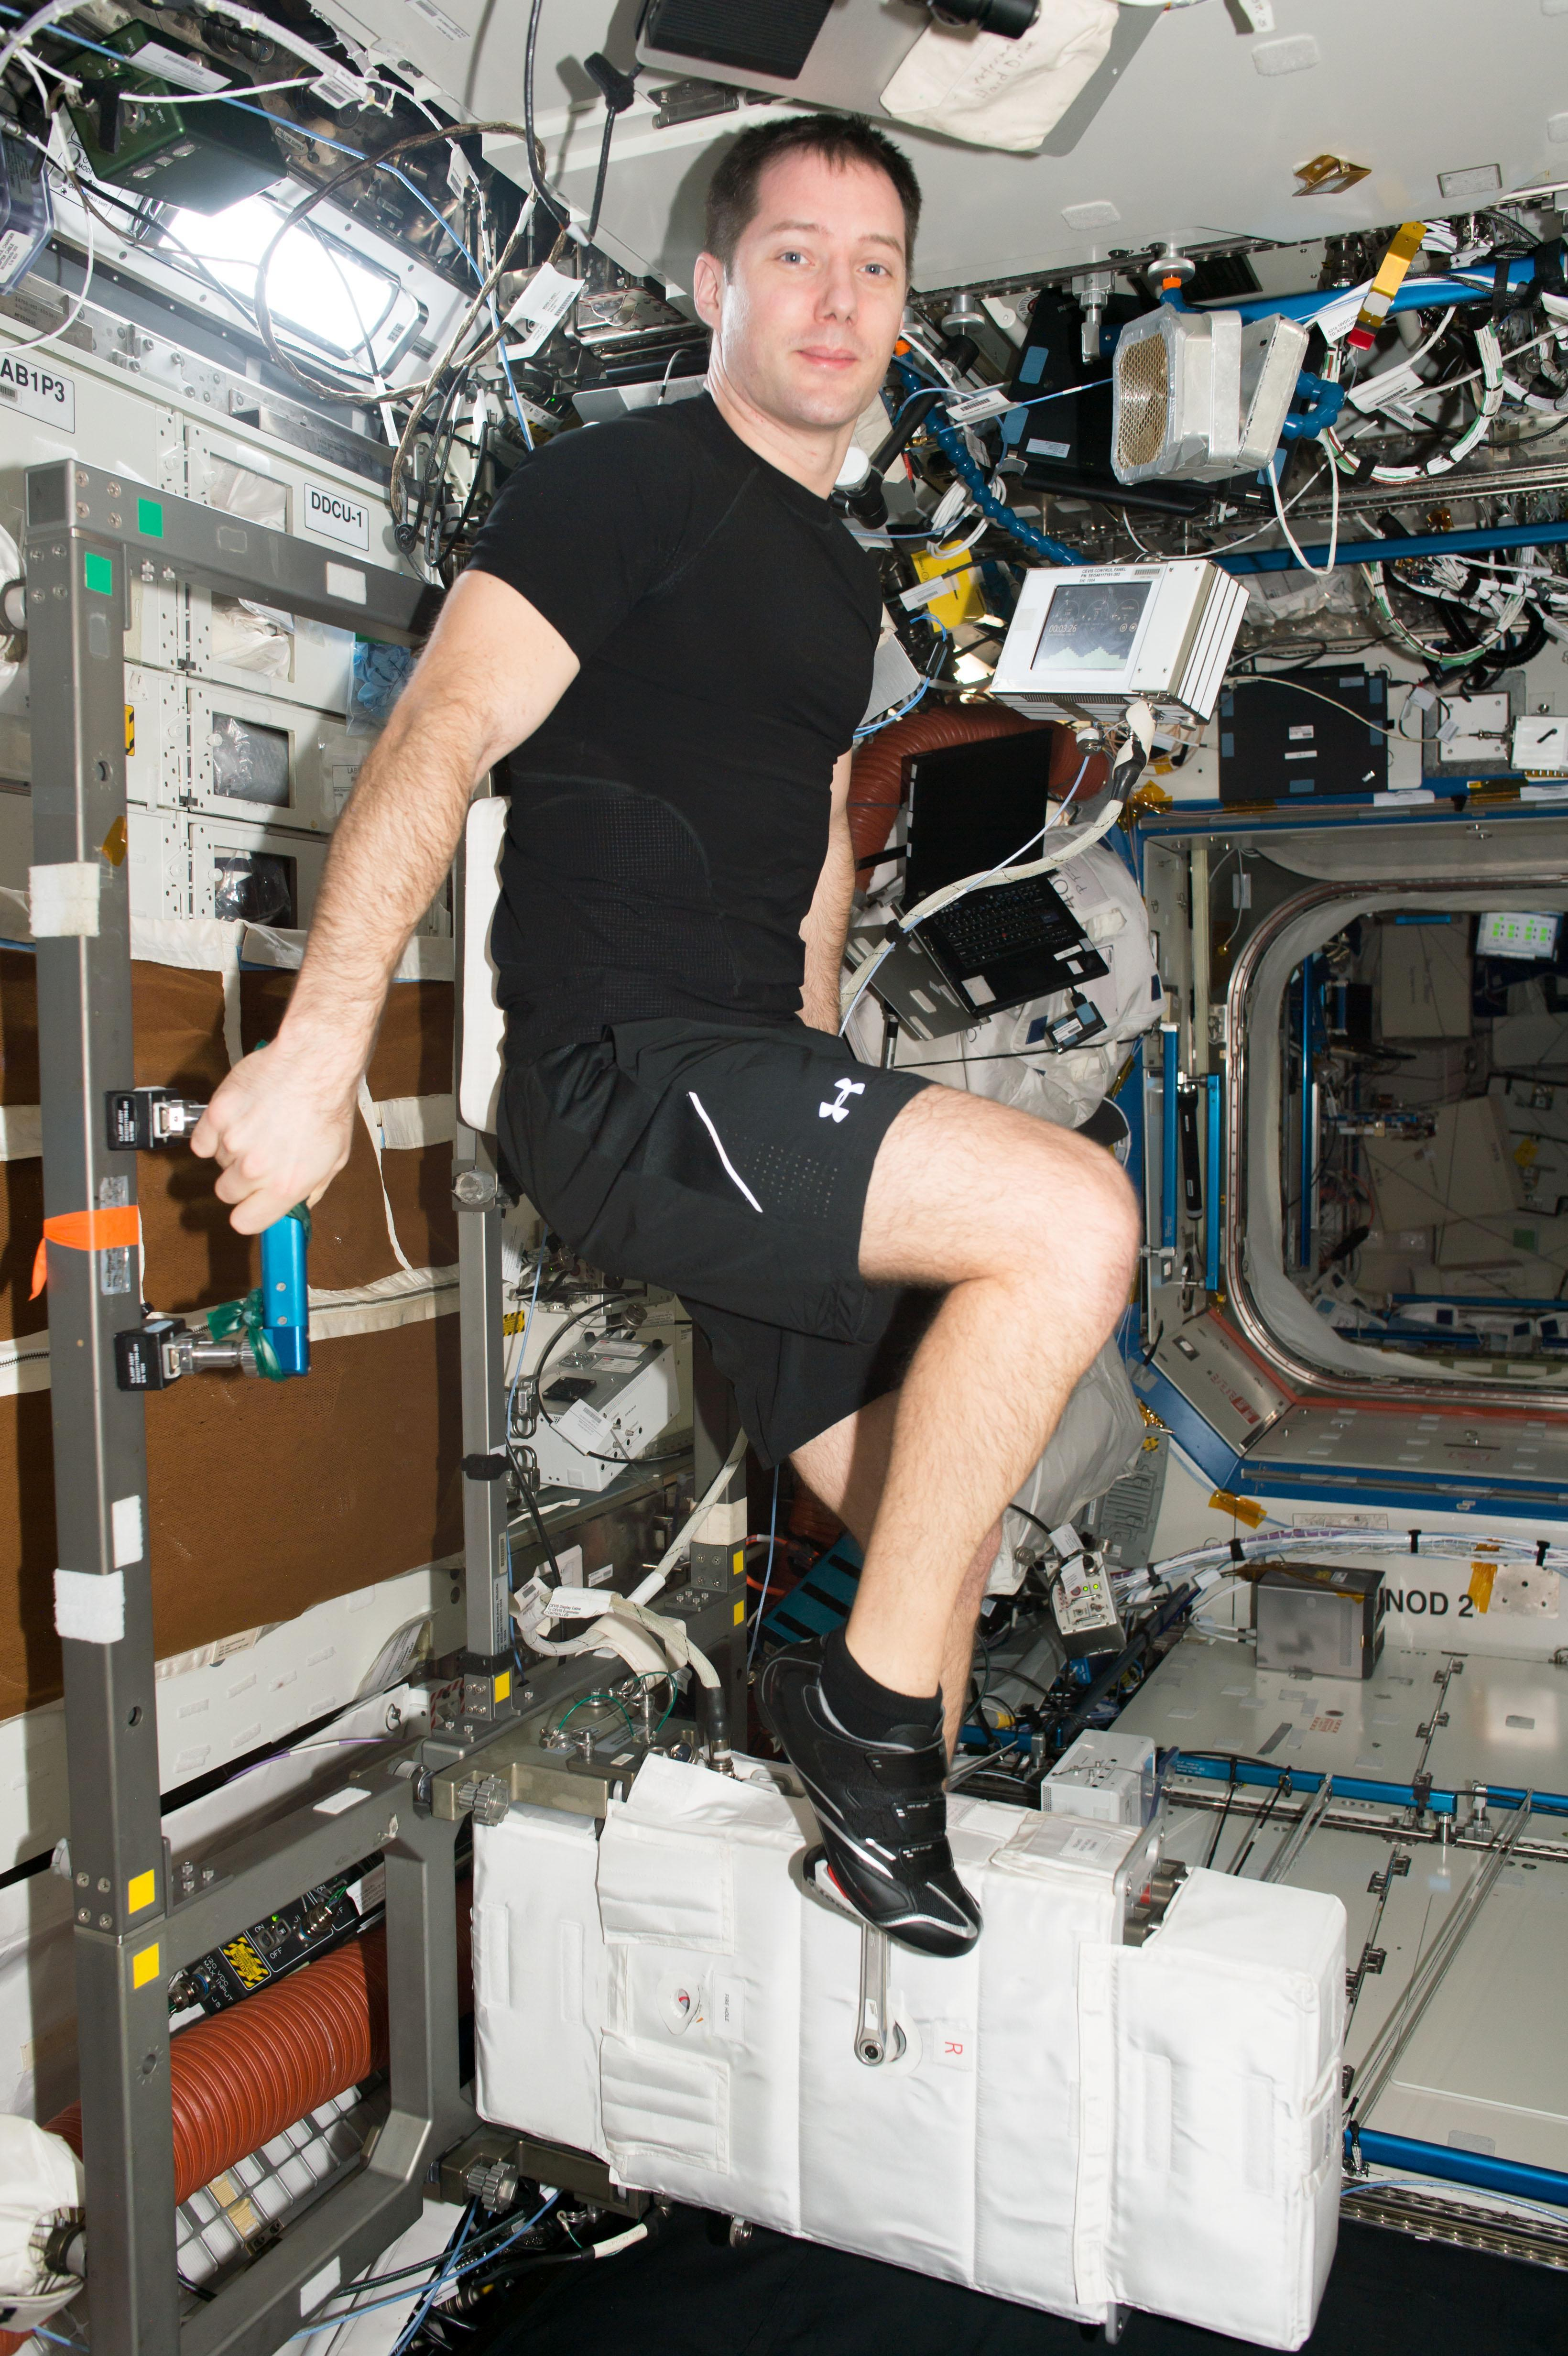 NASA - Cycle Ergometer with Vibration Isolation and